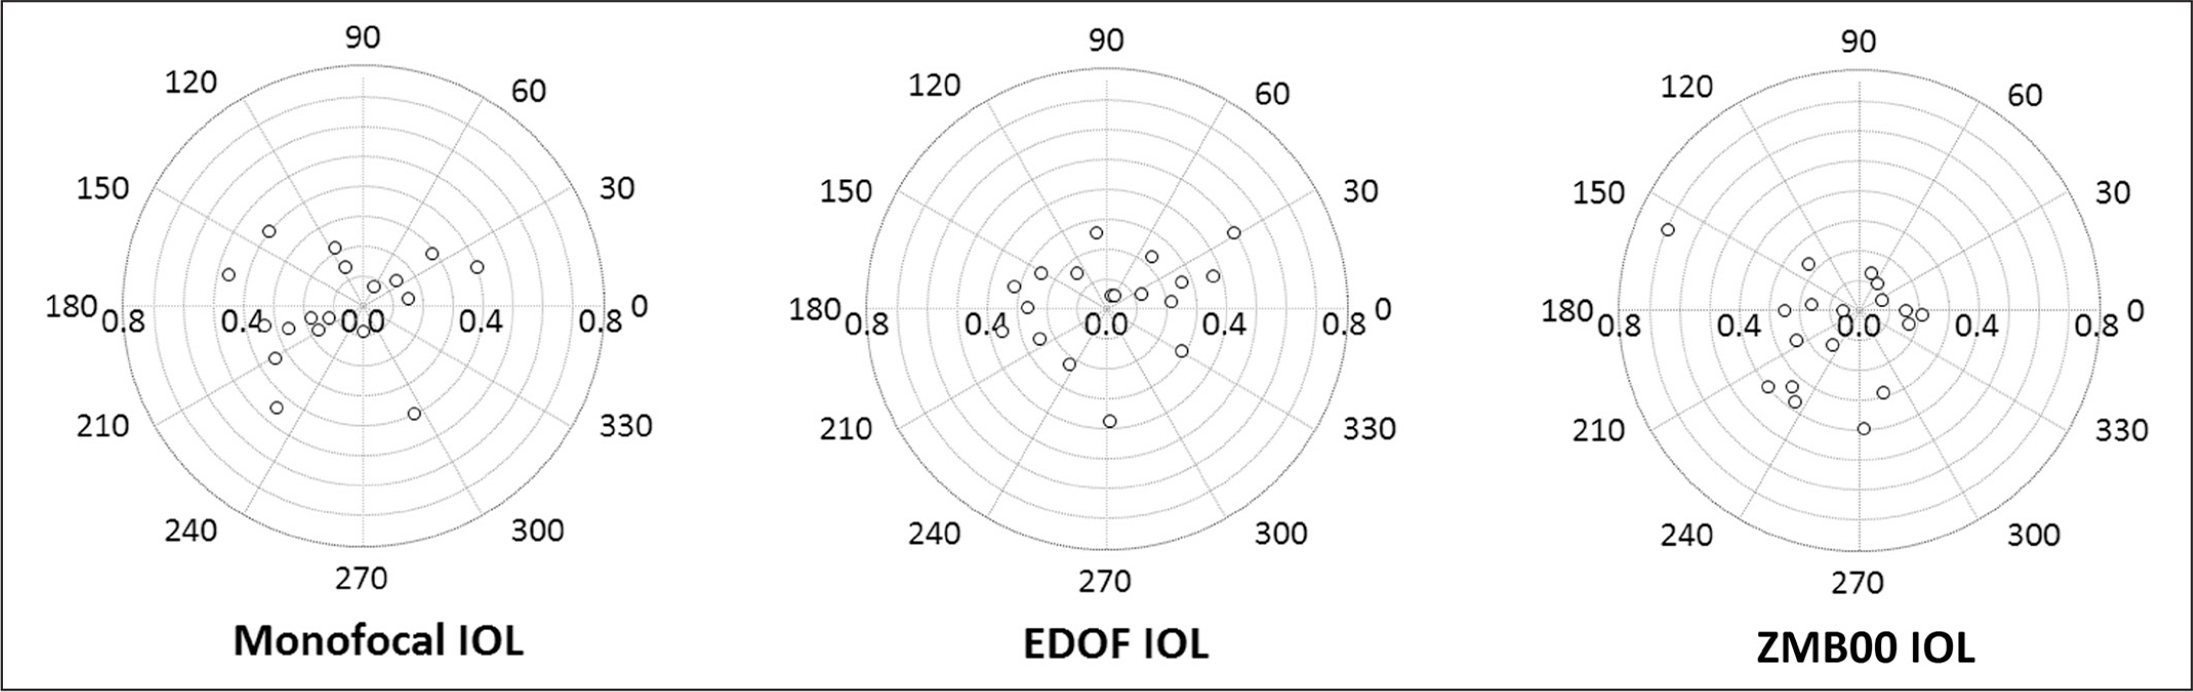 Decentration of each intraocular lens (IOL) type relative to the visual axis center. The ZMB00 IOL is manufactured by Abbott Medical Optics, Santa Ana, CA. EDOF = extended depth of focus